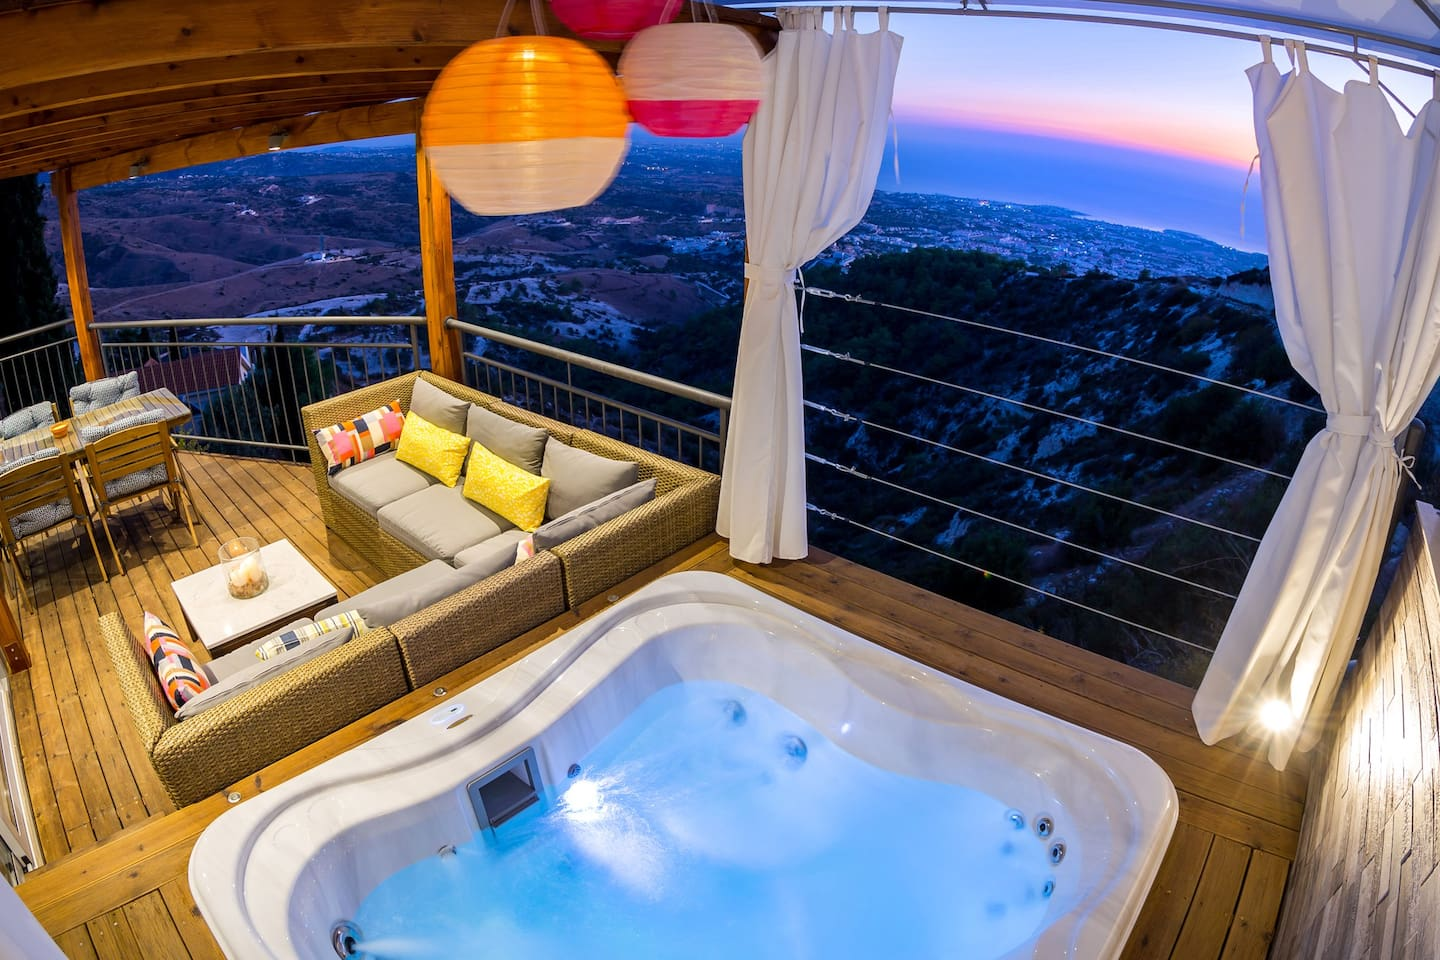 Balcony with luxury Jacuzzi and panoramic view